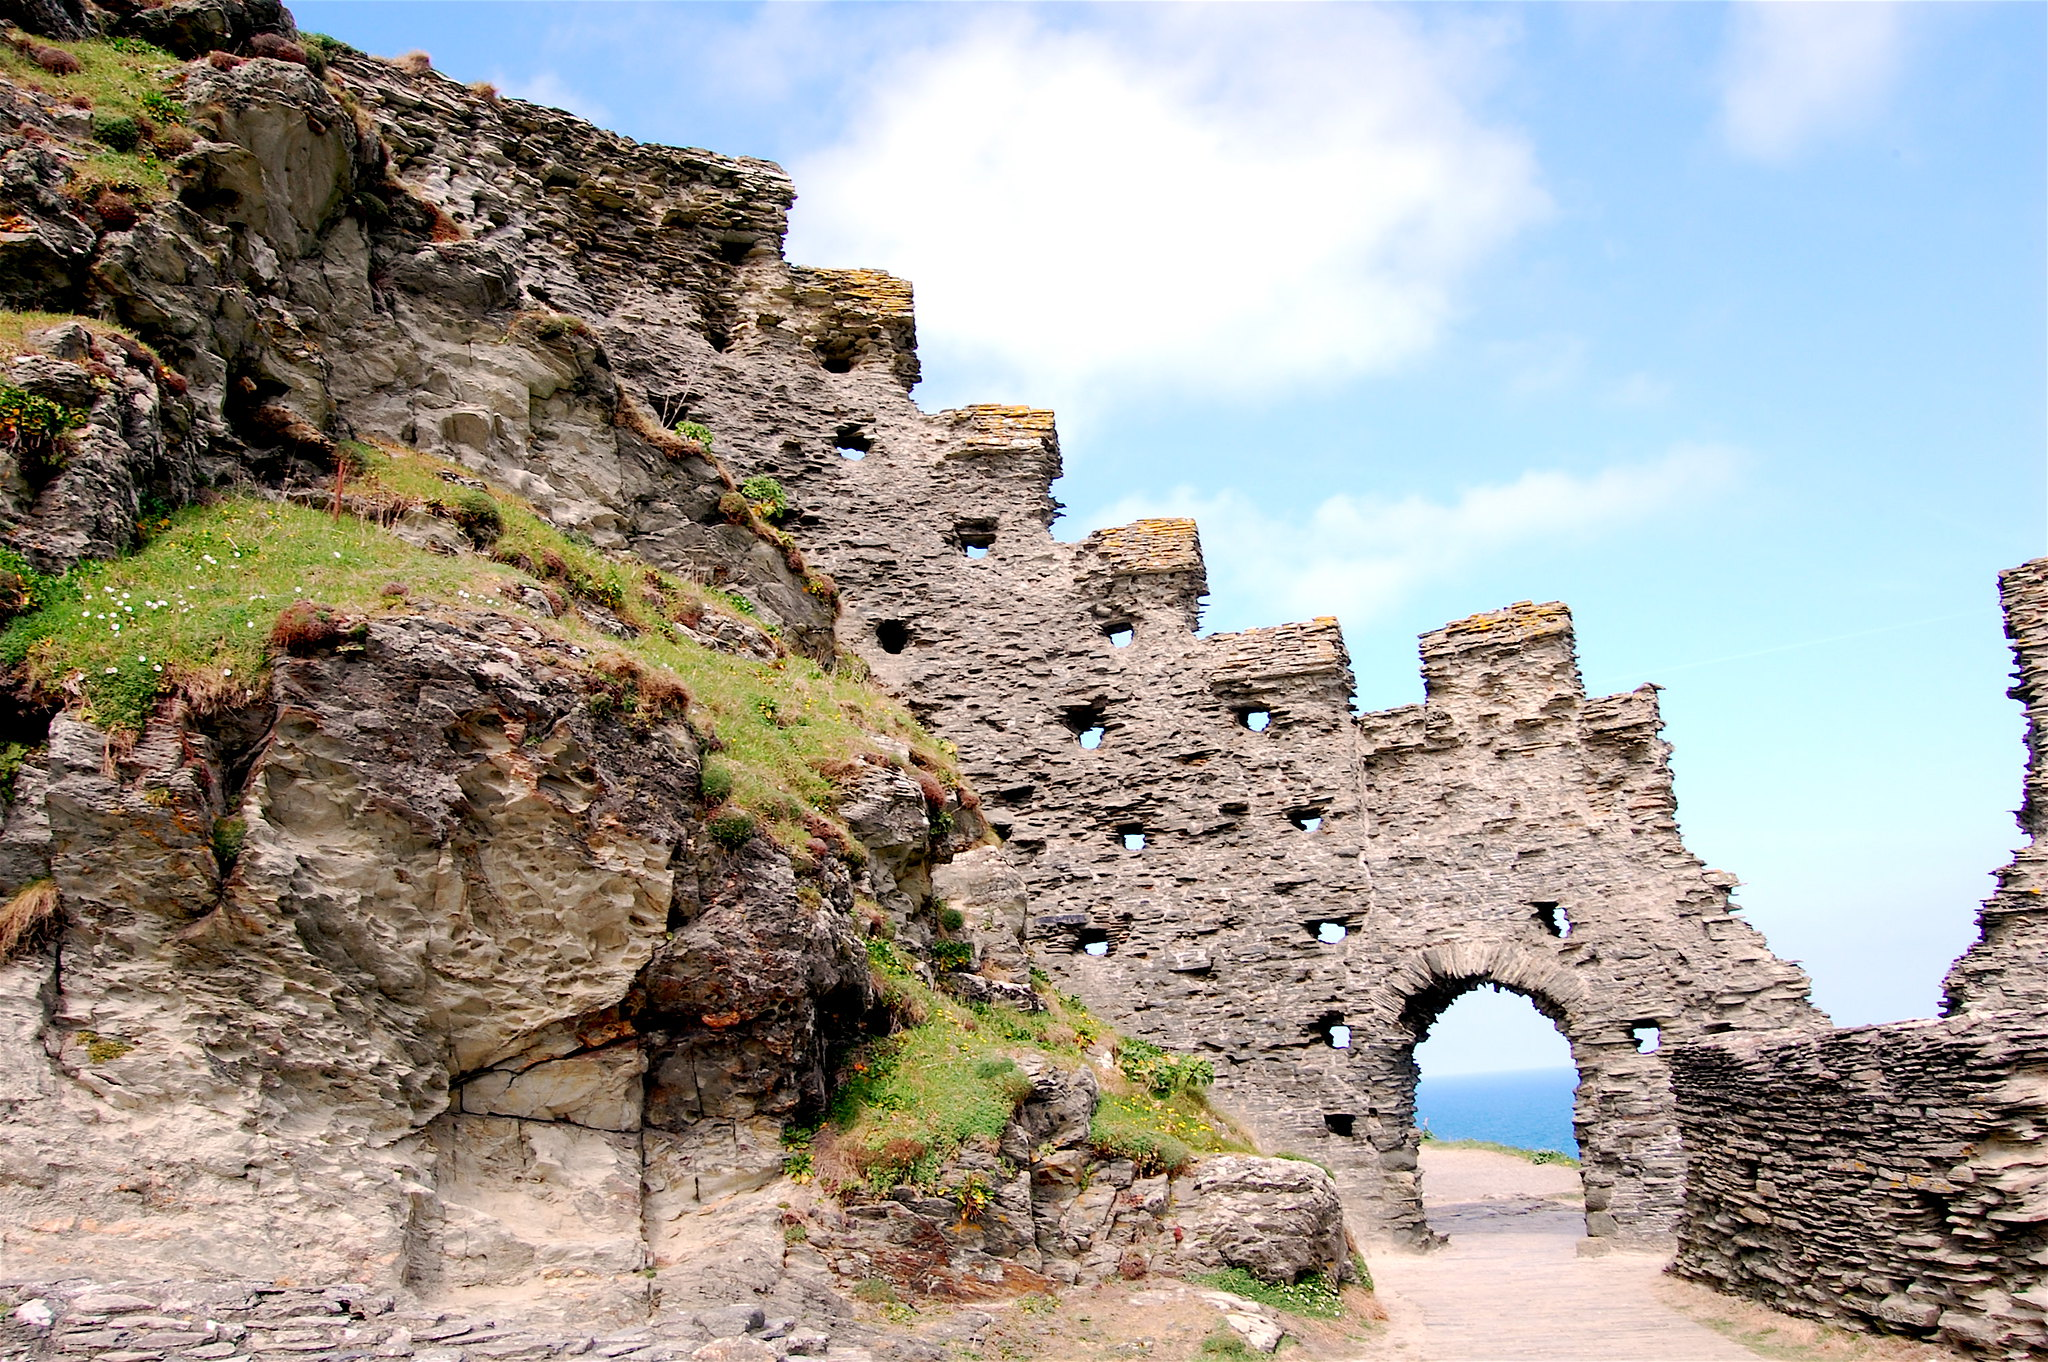 Tintagel Castle, galerie Flickr de Chris Bertram